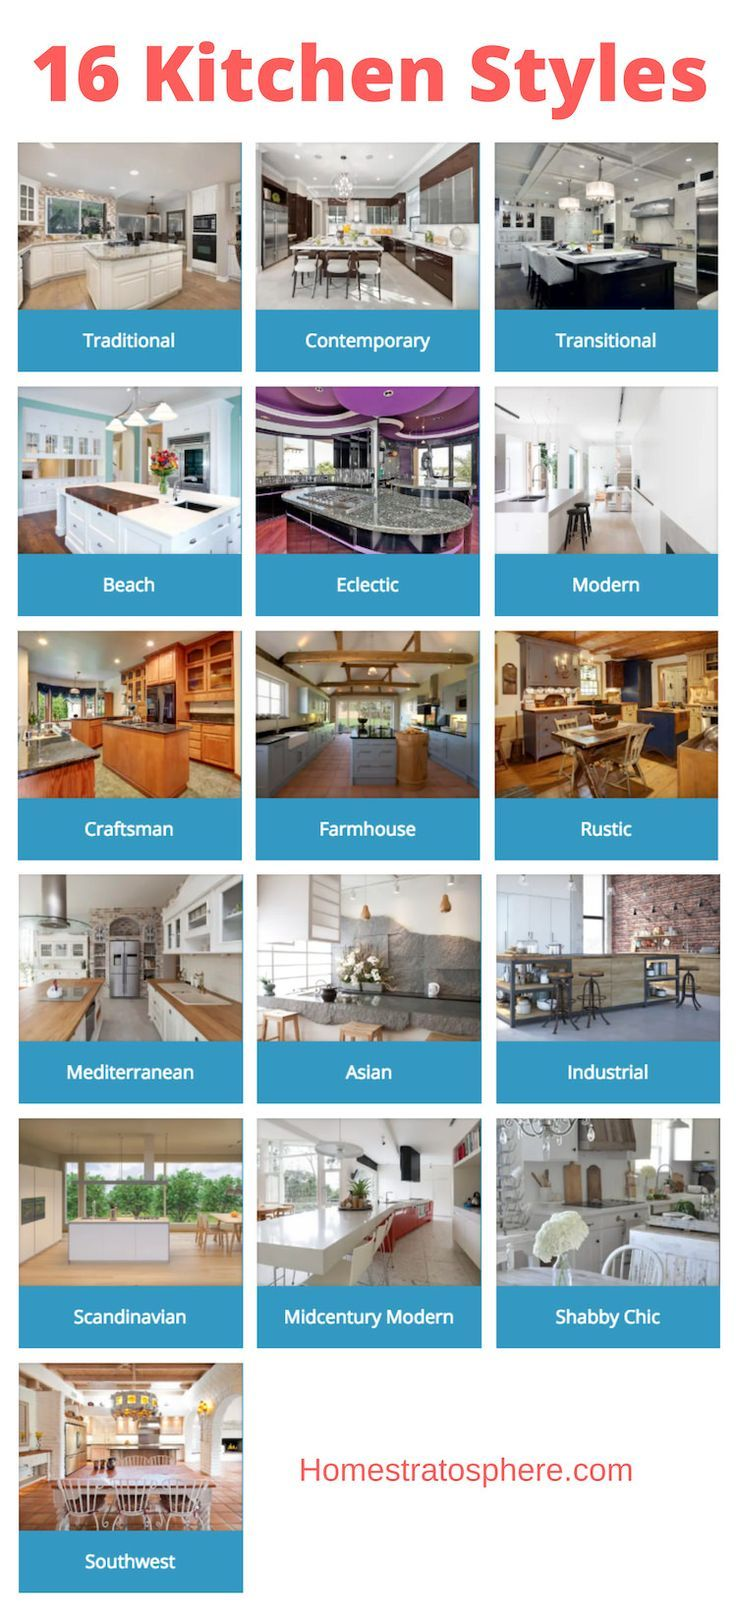 16 Different Types of Kitchen Styles | For the Home ...